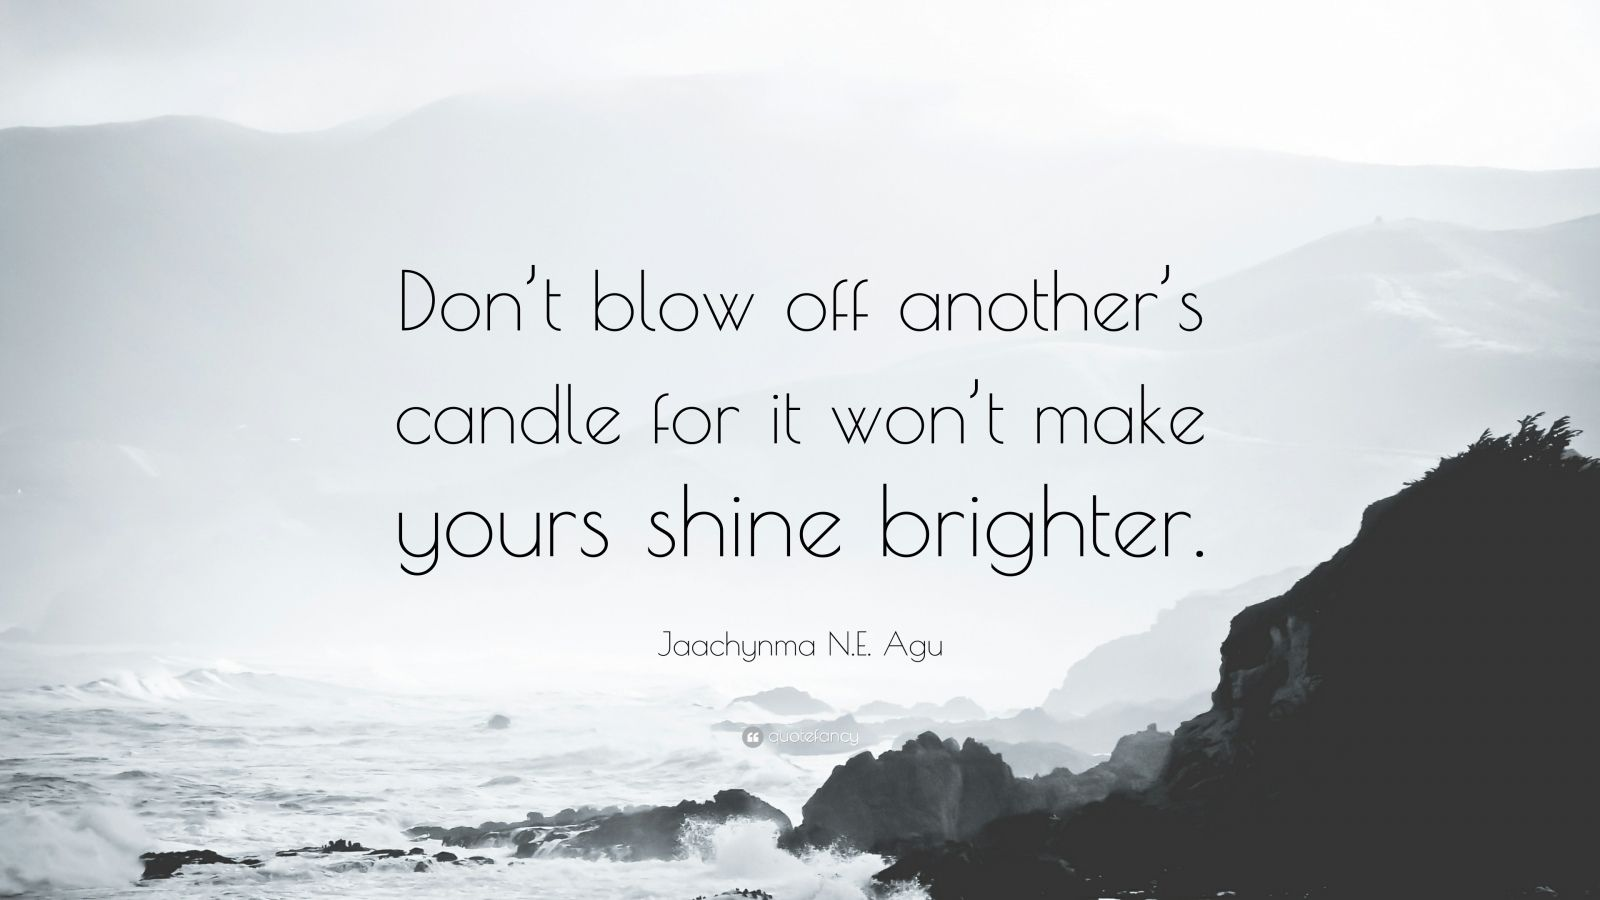 """Jaachynma N.E. Agu Quote: """"Don't blow off another's candle for it won't make yours shine brighter."""""""